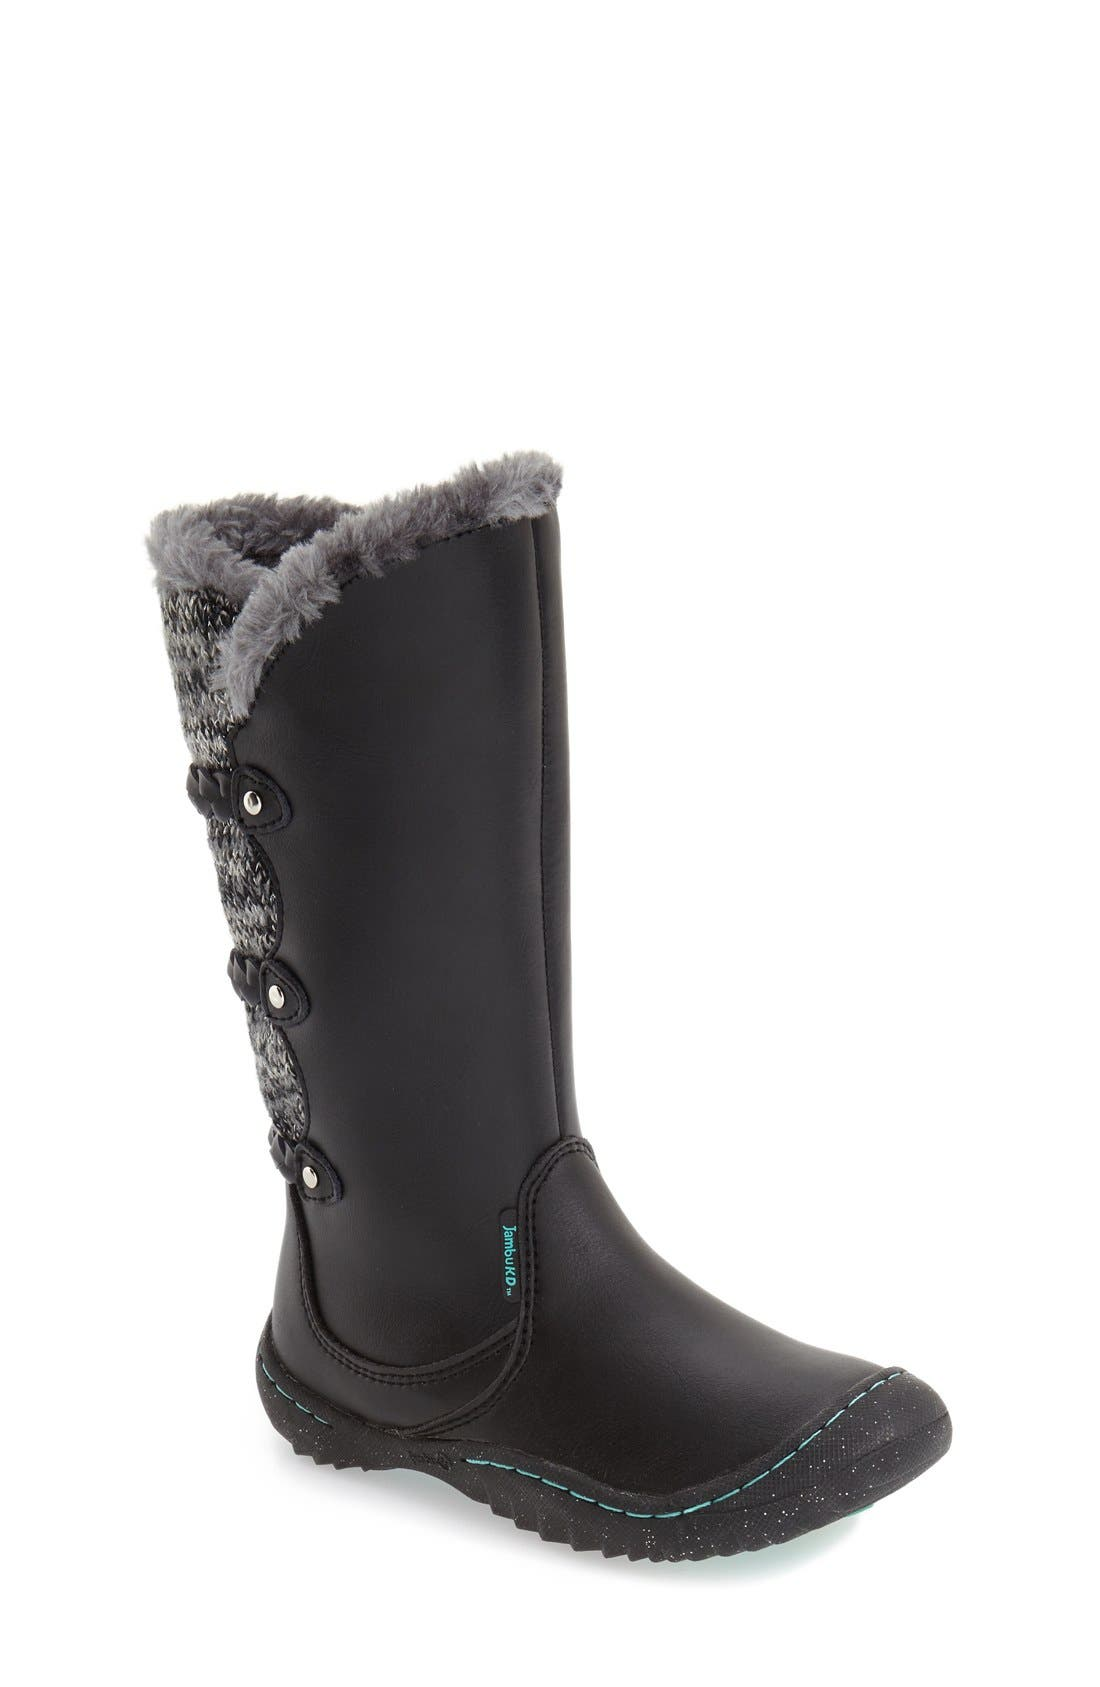 Alternate Image 1 Selected - Jambu 'Azami' Water Resistant Boot (Toddler, Little Kid & Big Kid)